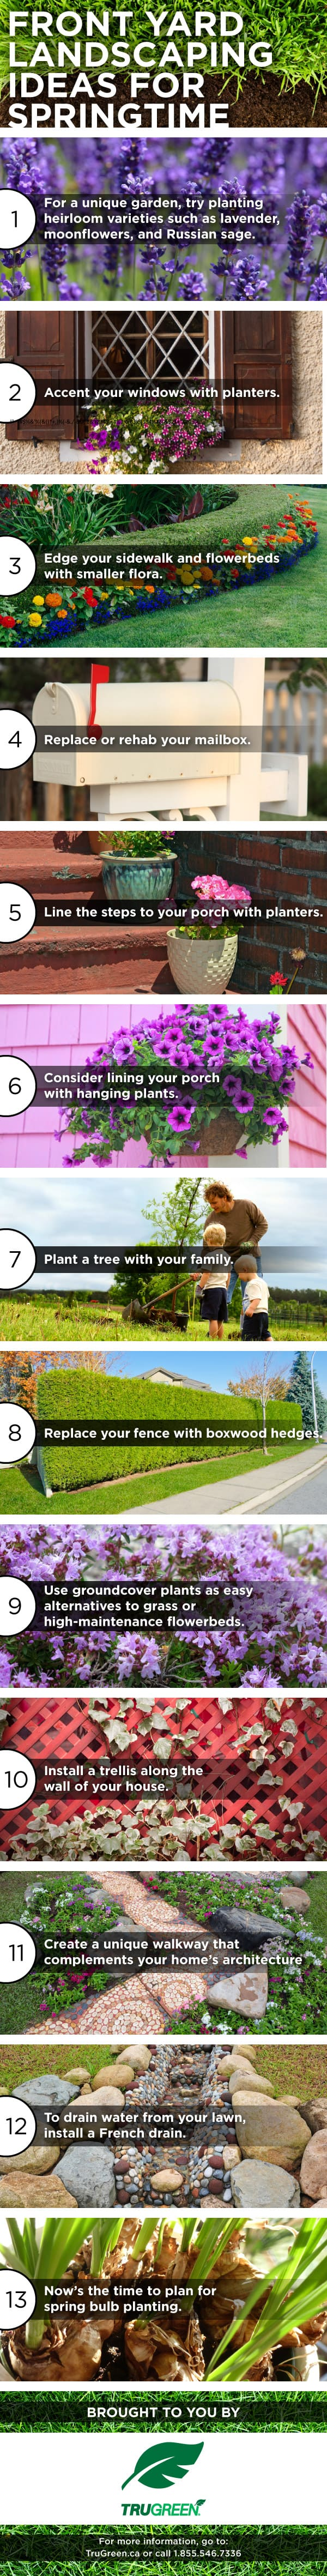 Whether you're preparing to sell your house, or you just want to improve your home's curb appeal, here's our Curb Appeal 101, 13 ideas for Spring landscaping!